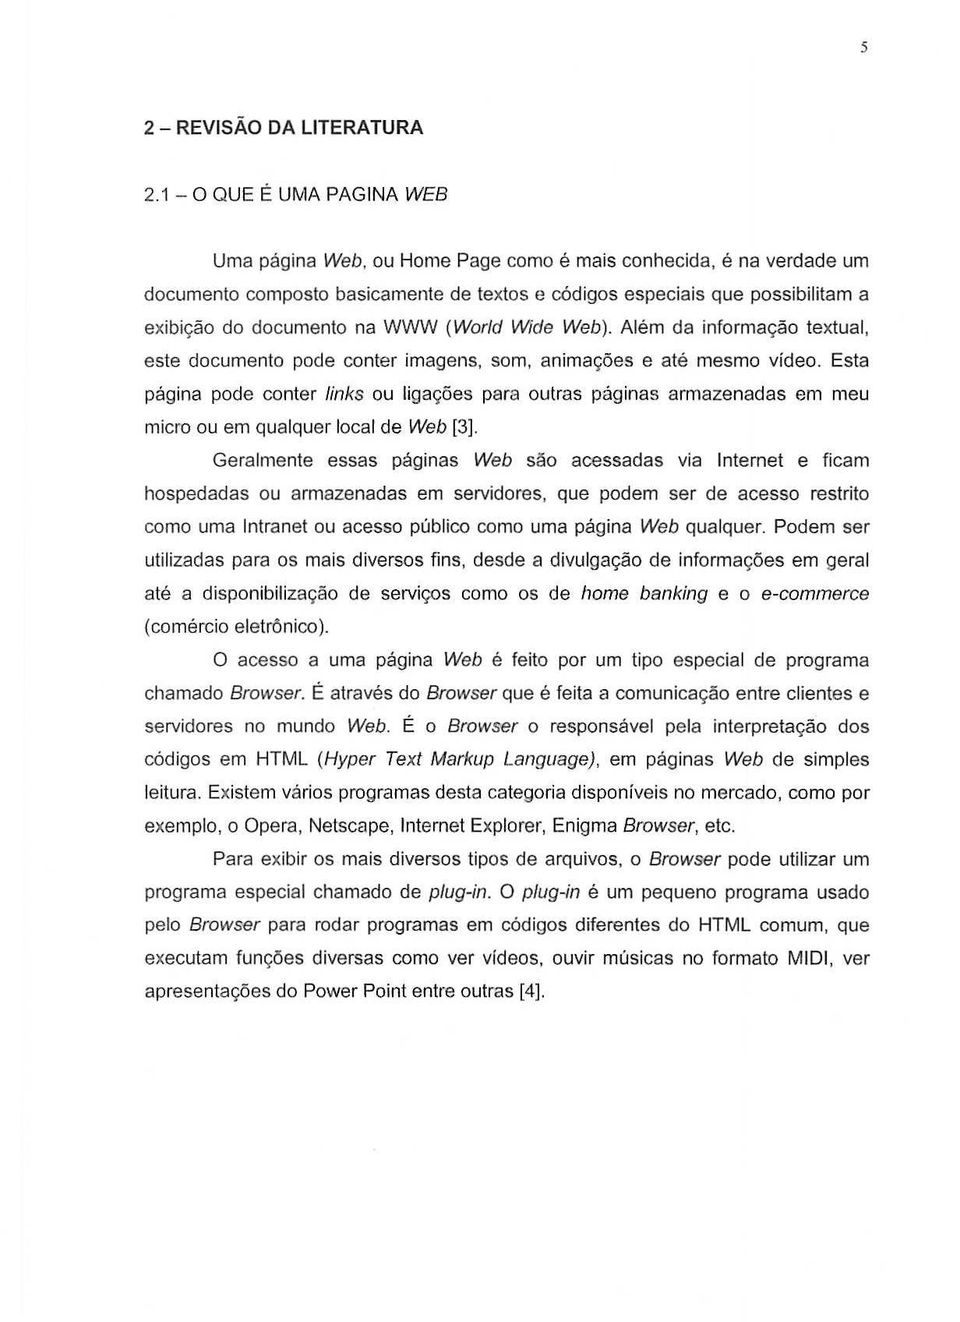 WWW (World Wide Web). Alem da informayao textual, este documento pade conter imagens, som, animac;oes e ate mesmo video.